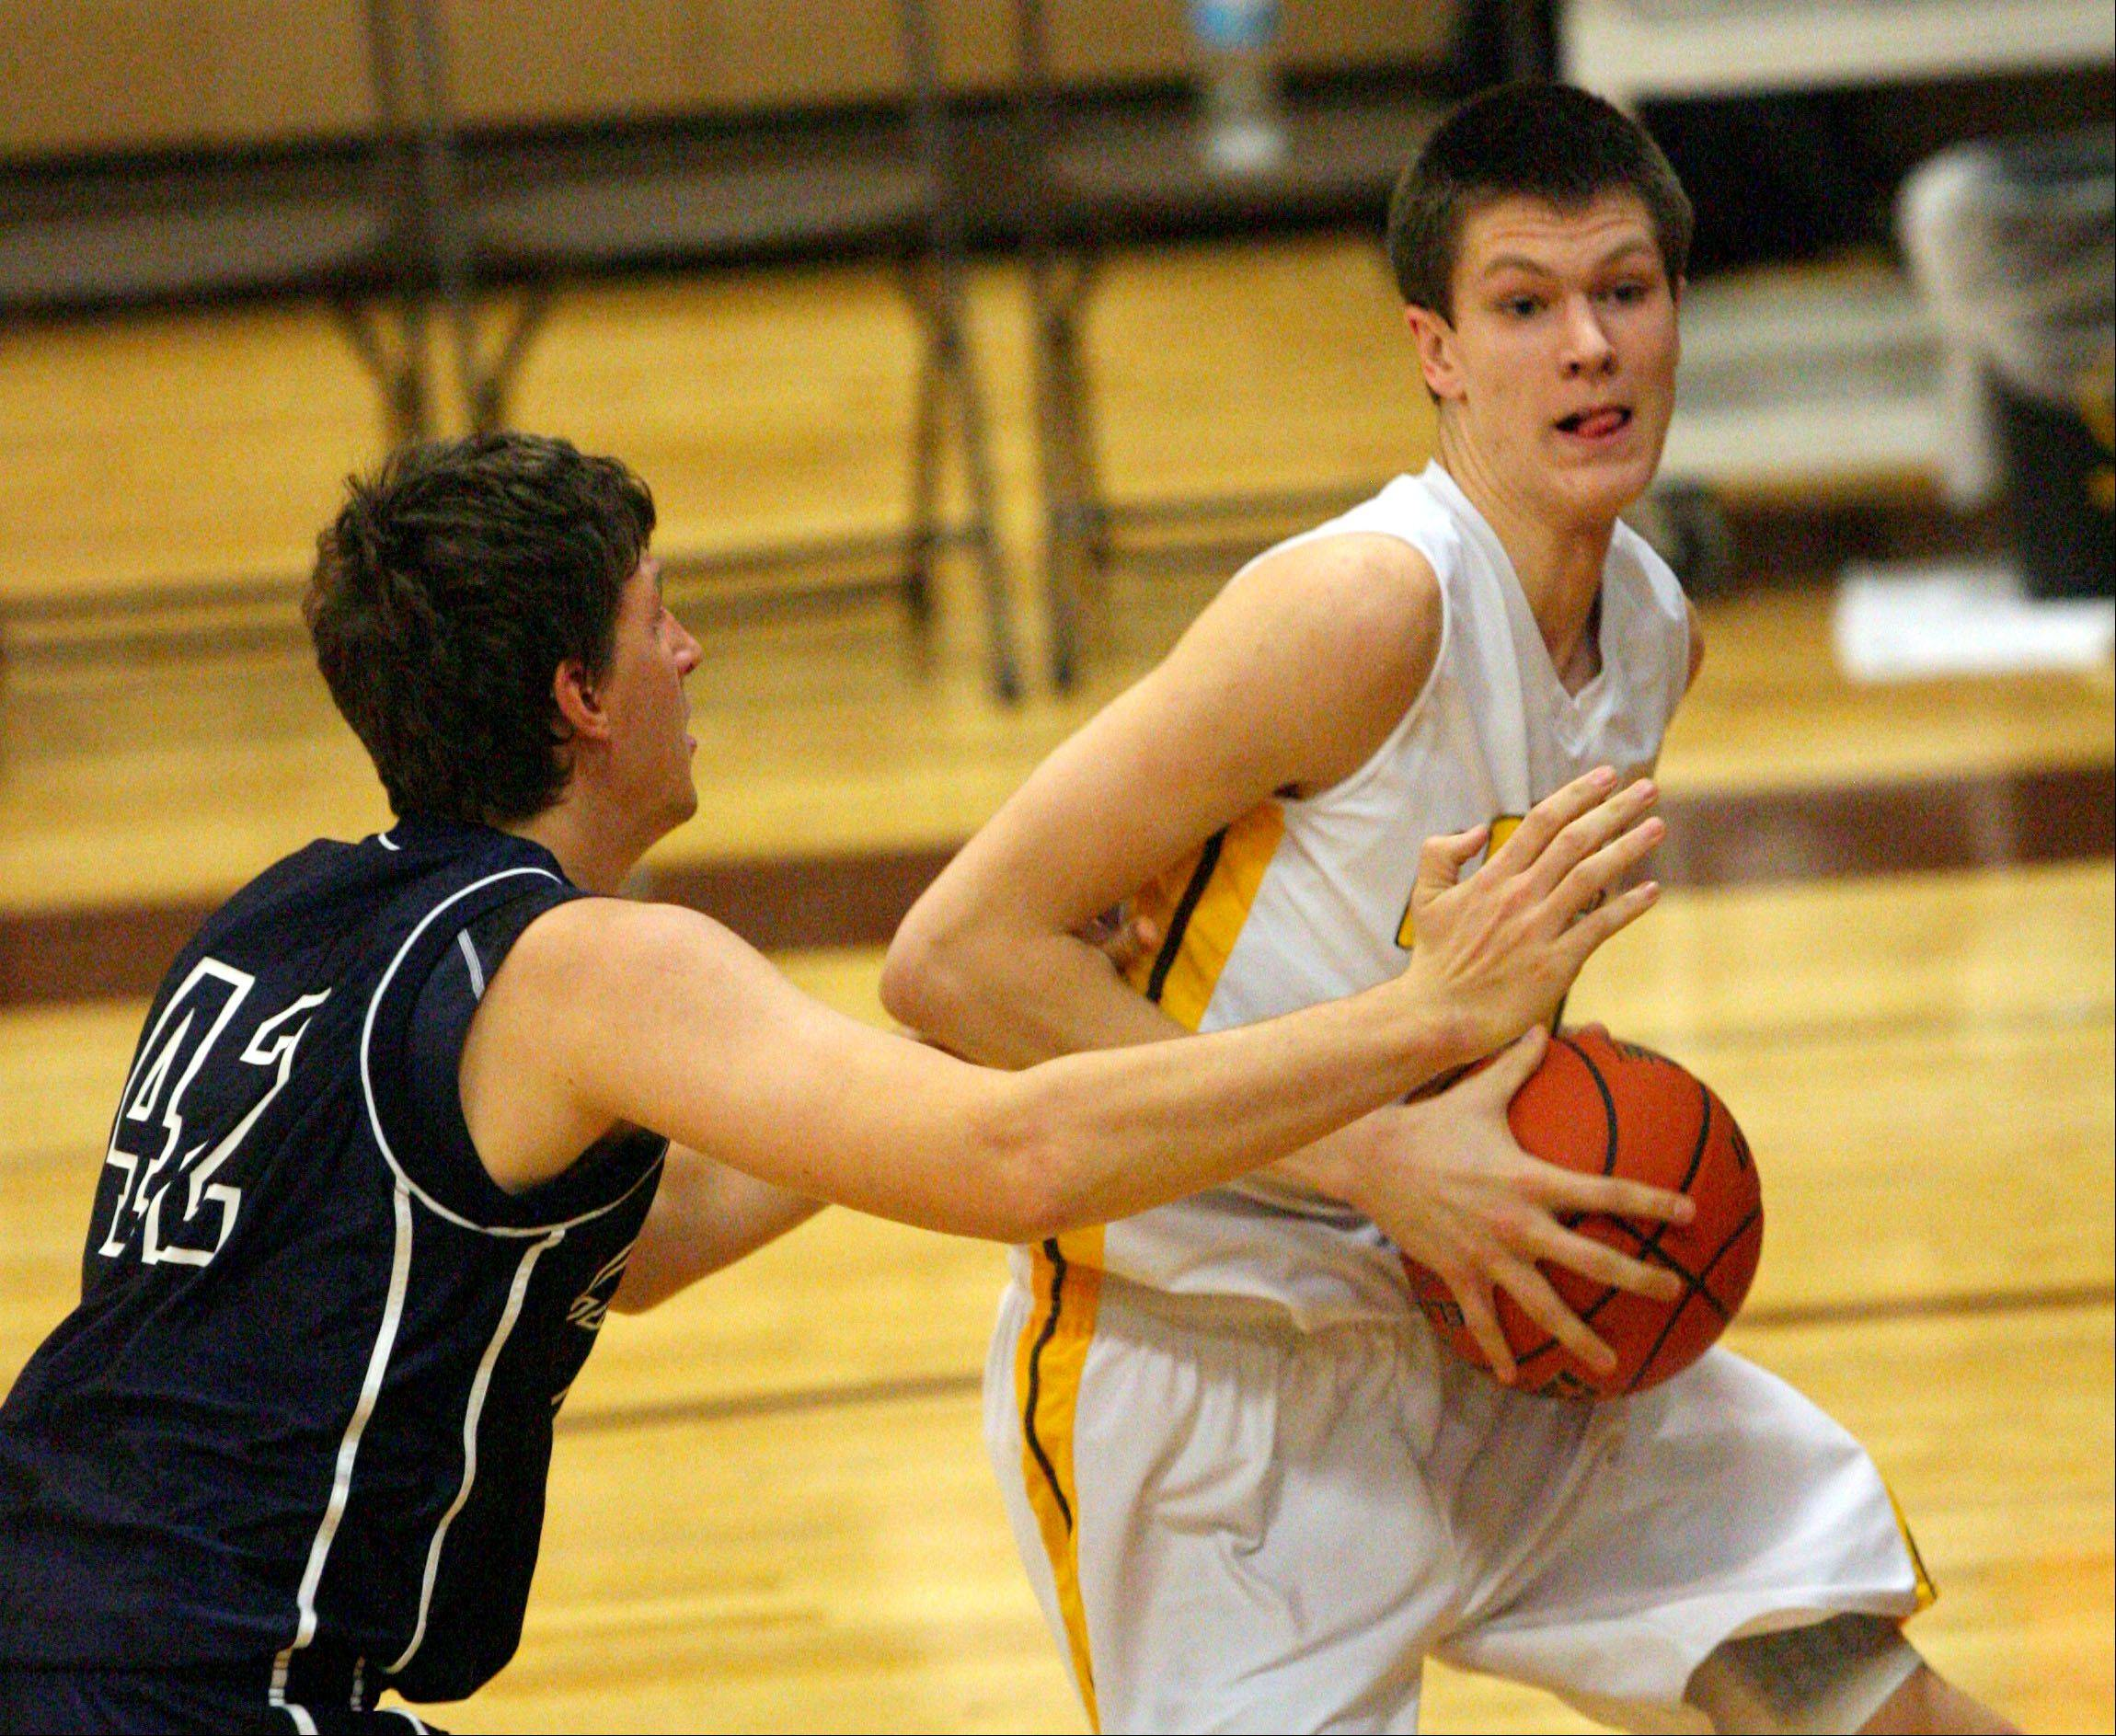 Images from the Cary-Grove at Carmel boys basketball game Wednesday, Dec. 5 in Mundelein..